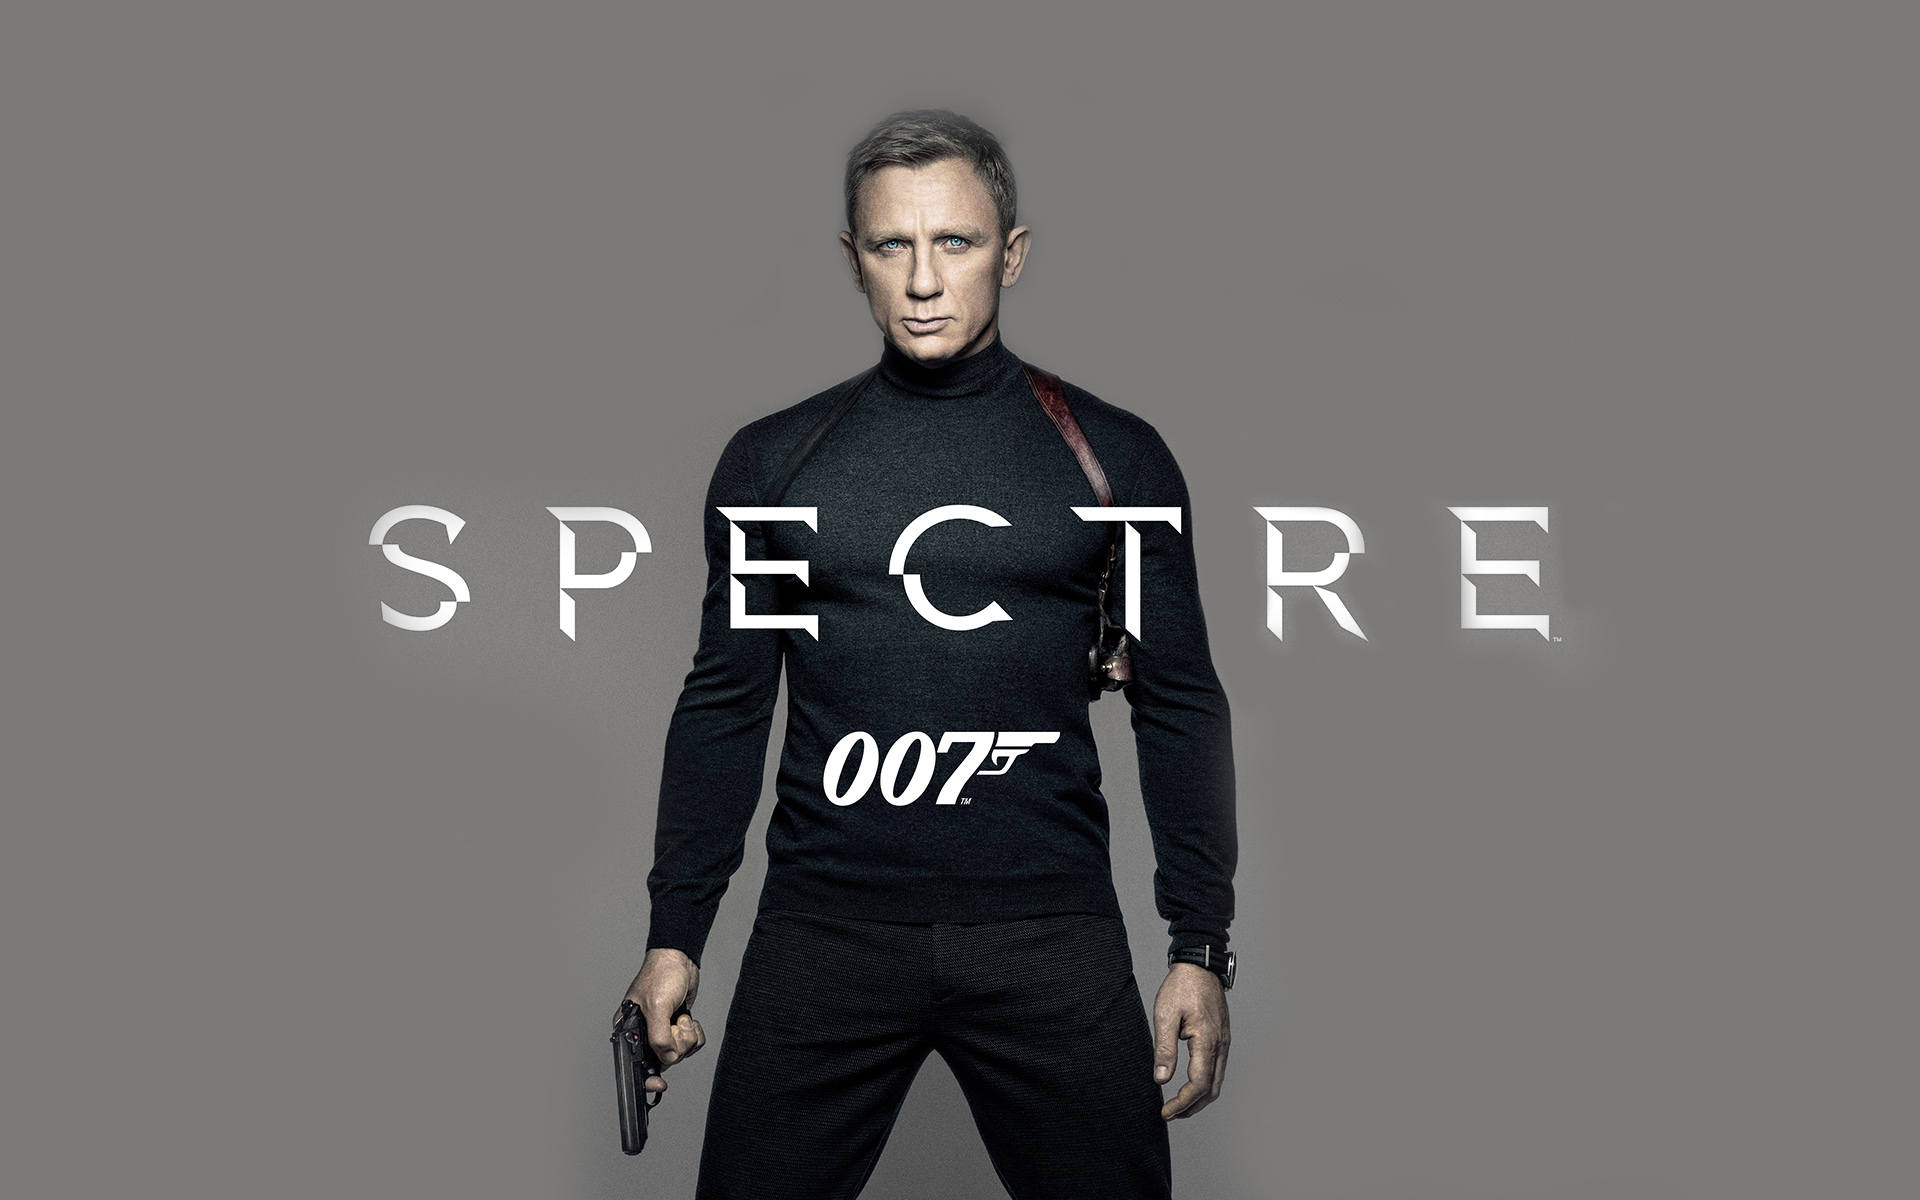 James Bond Returns In New Spectre Trailer The Second Take